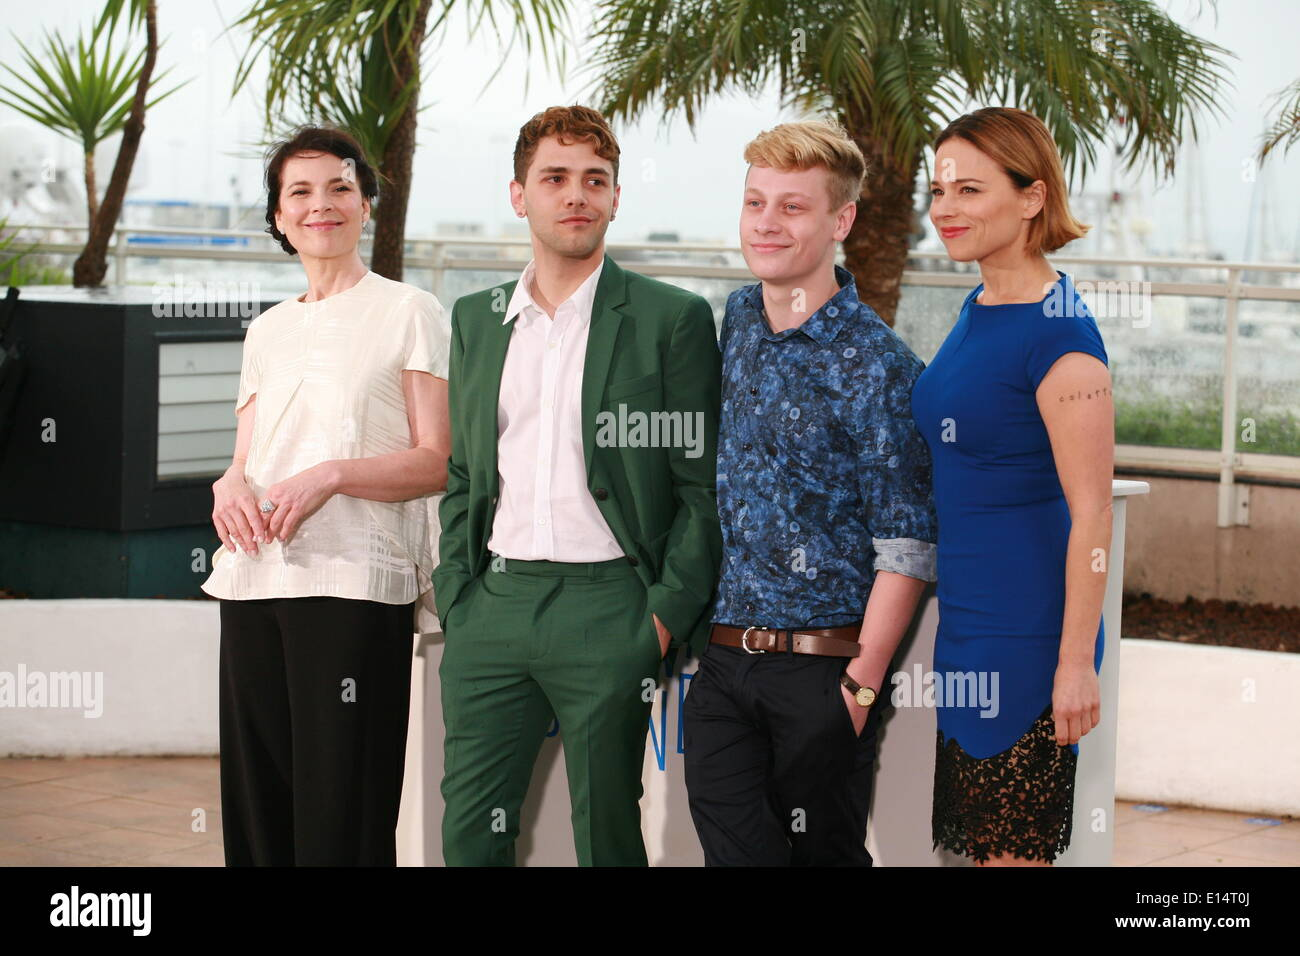 Cannes, France. 22nd May, 2014. Anne Dorval, Director Xavier Dolan, Antoine-Olivier Pilon and Suzanne ClŽment at the photo call for the film Mommy at the 67th Cannes Film Festival, Thursday 22nd May 2014, Cannes, France. Credit:  Doreen Kennedy/Alamy Live News - Stock Image